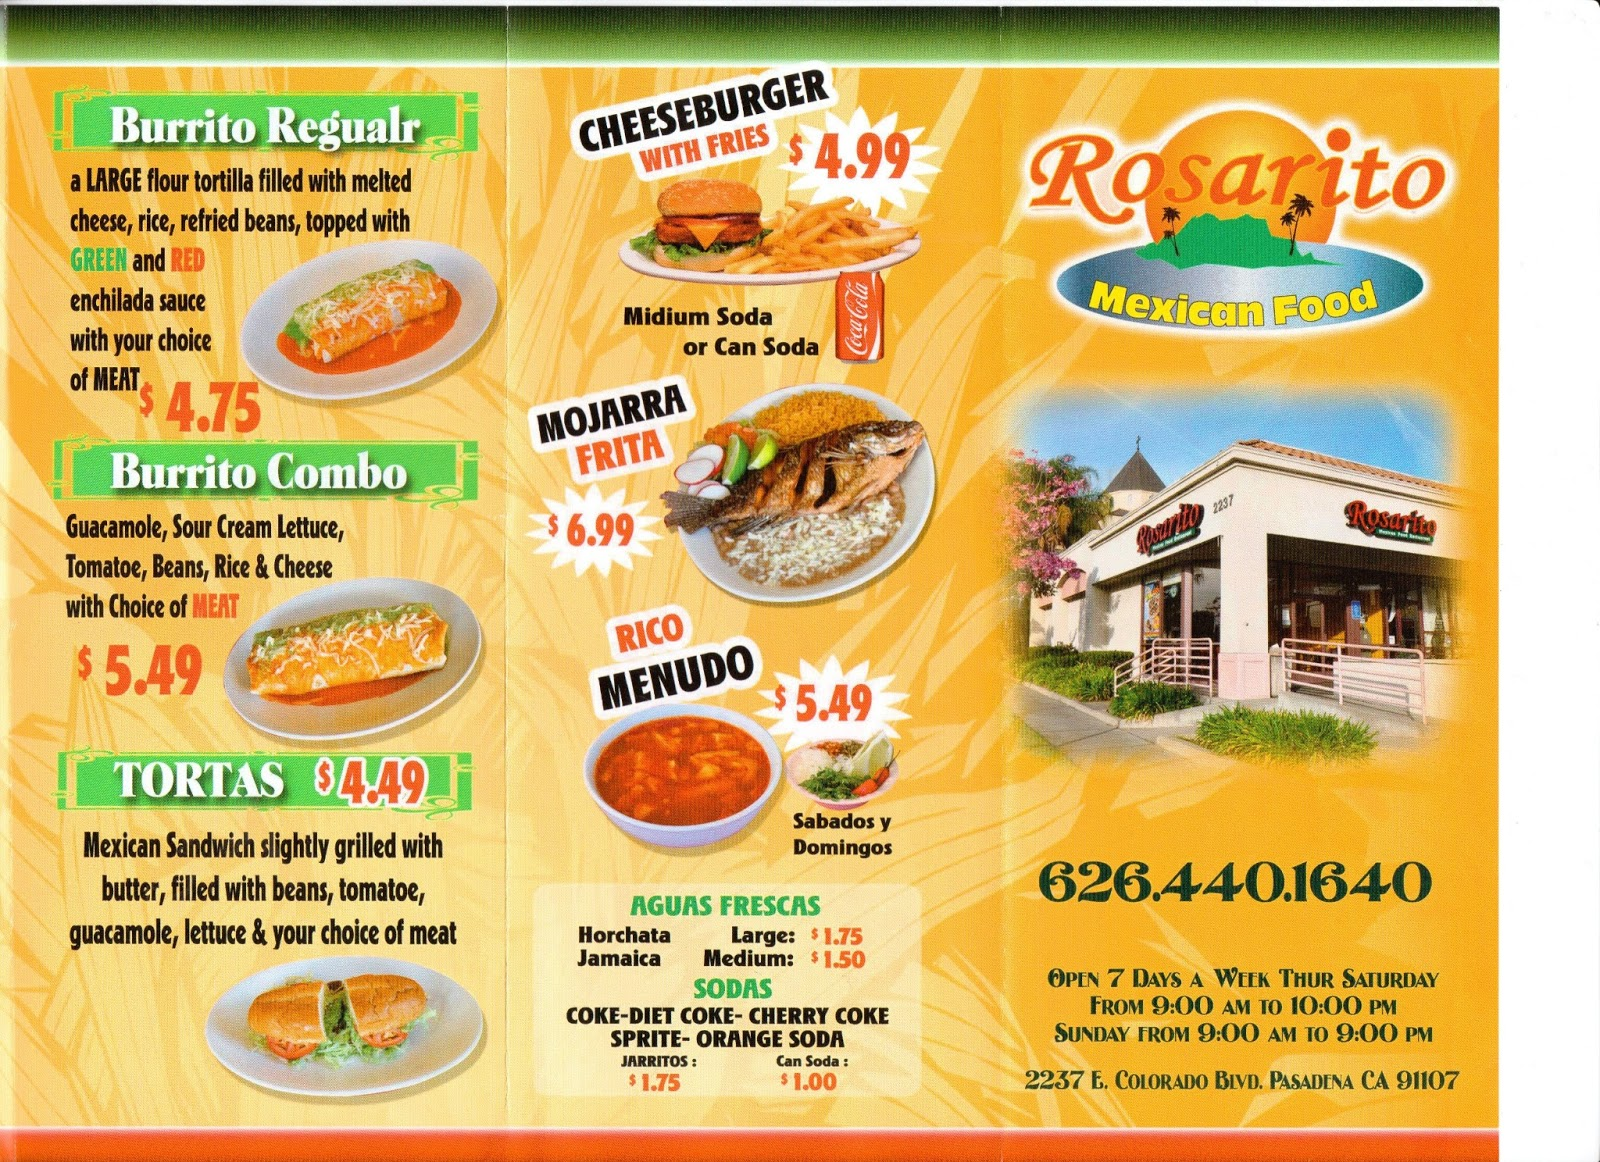 Rosarito Mexican Food Pasadena Menu 2237 E Colorado Blvd Ca 91107